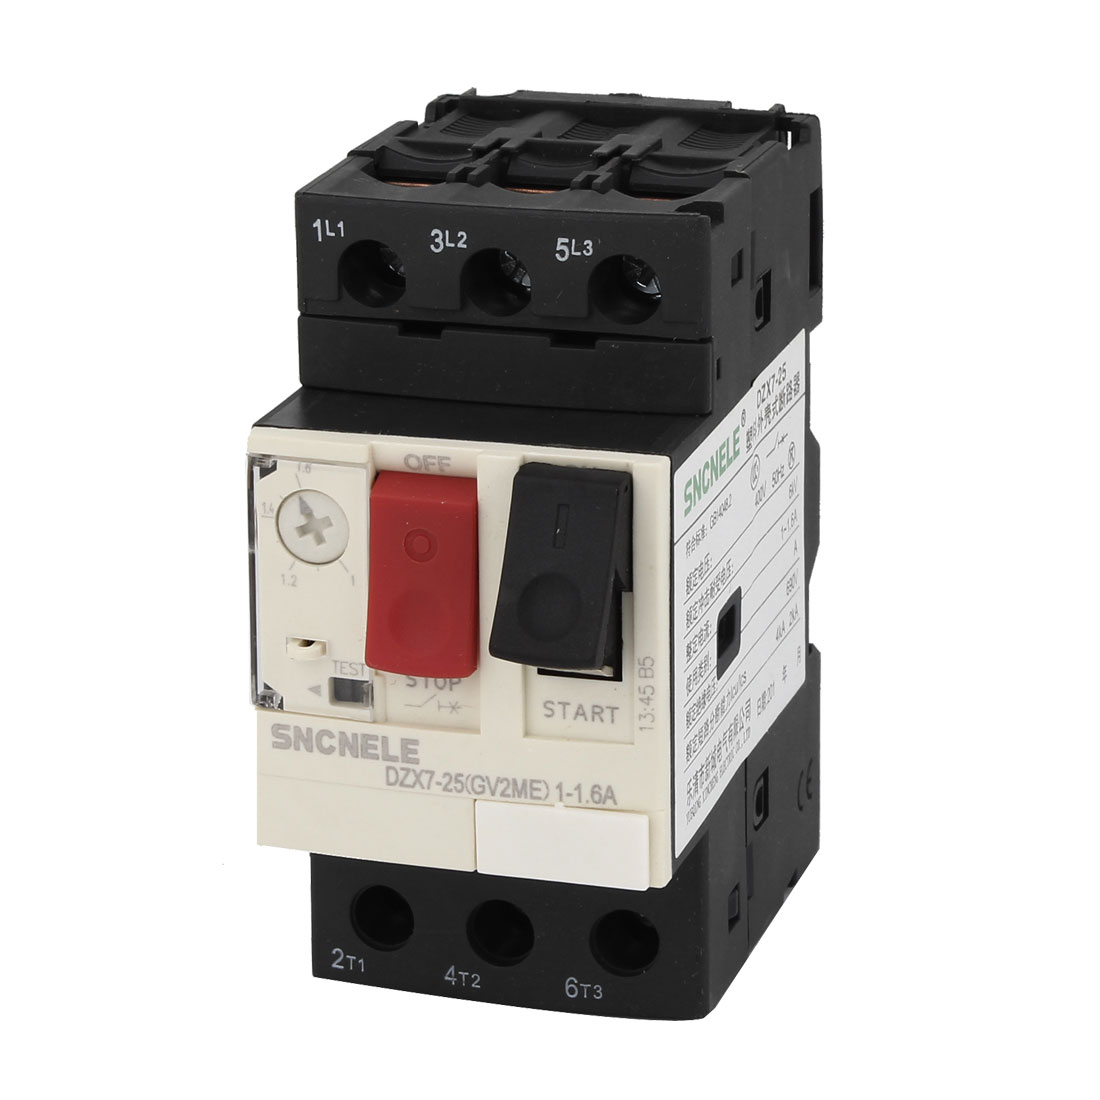 1-1.6A 690V 6KV ON/OFF Button Black Starting NO+NC Motor Circuit Breaker